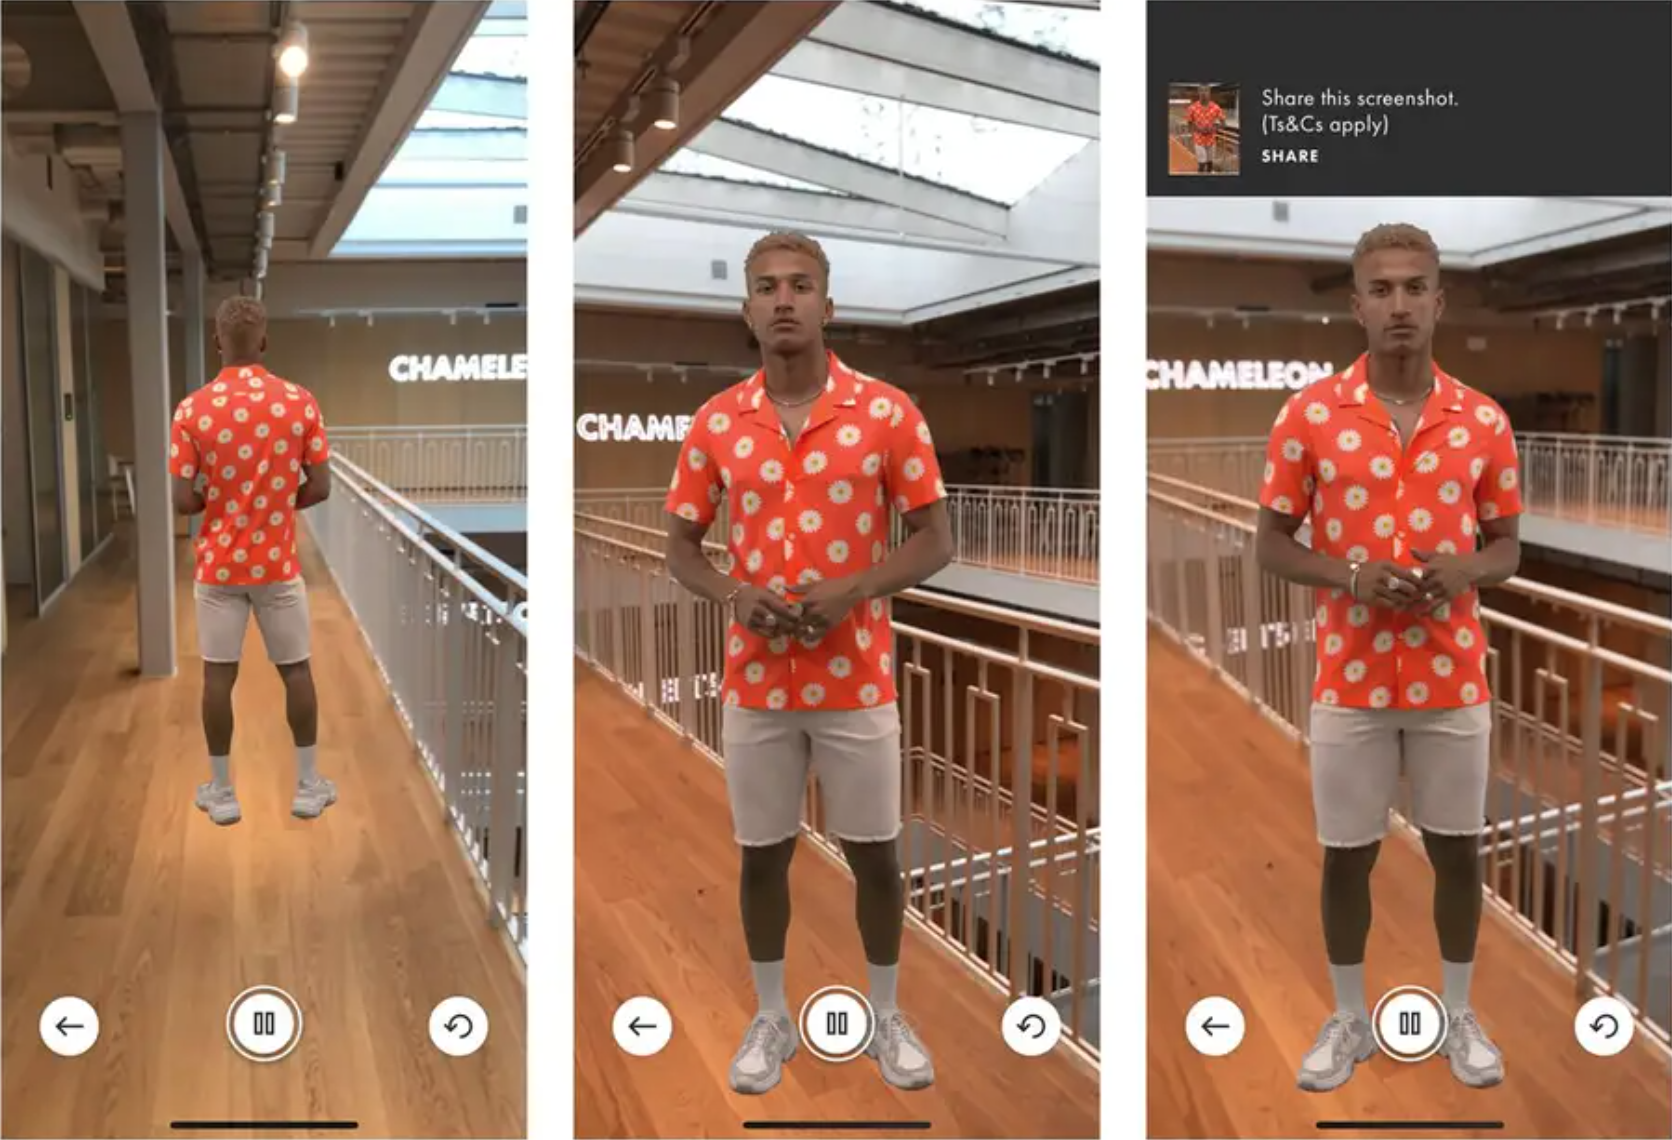 ASOS augmented reality